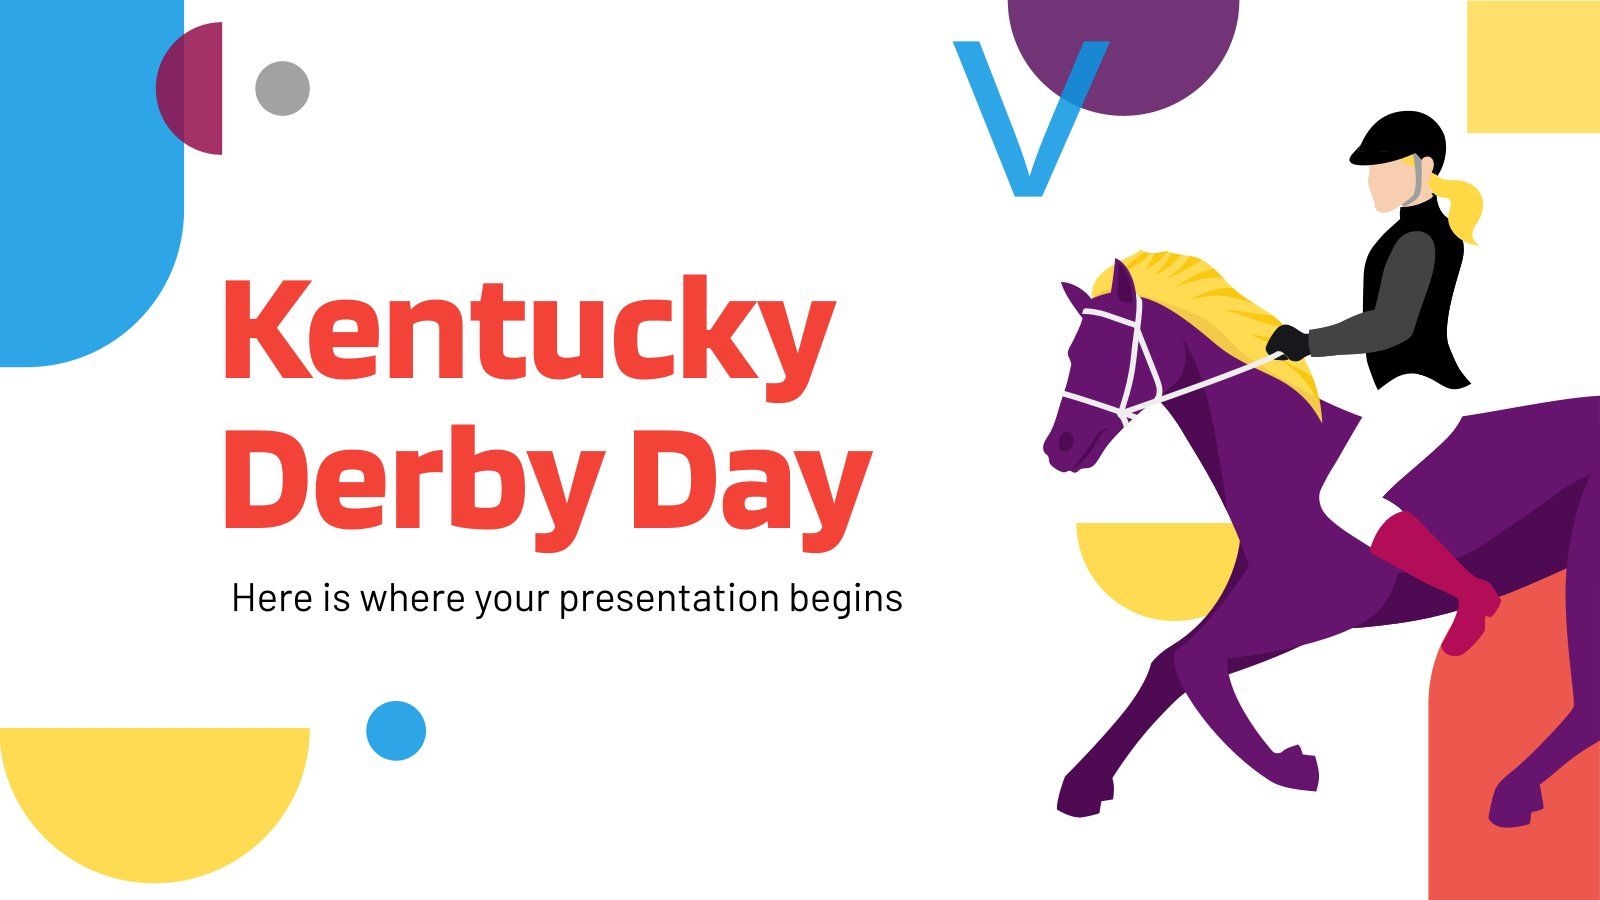 Kentucky Derby Day presentation template